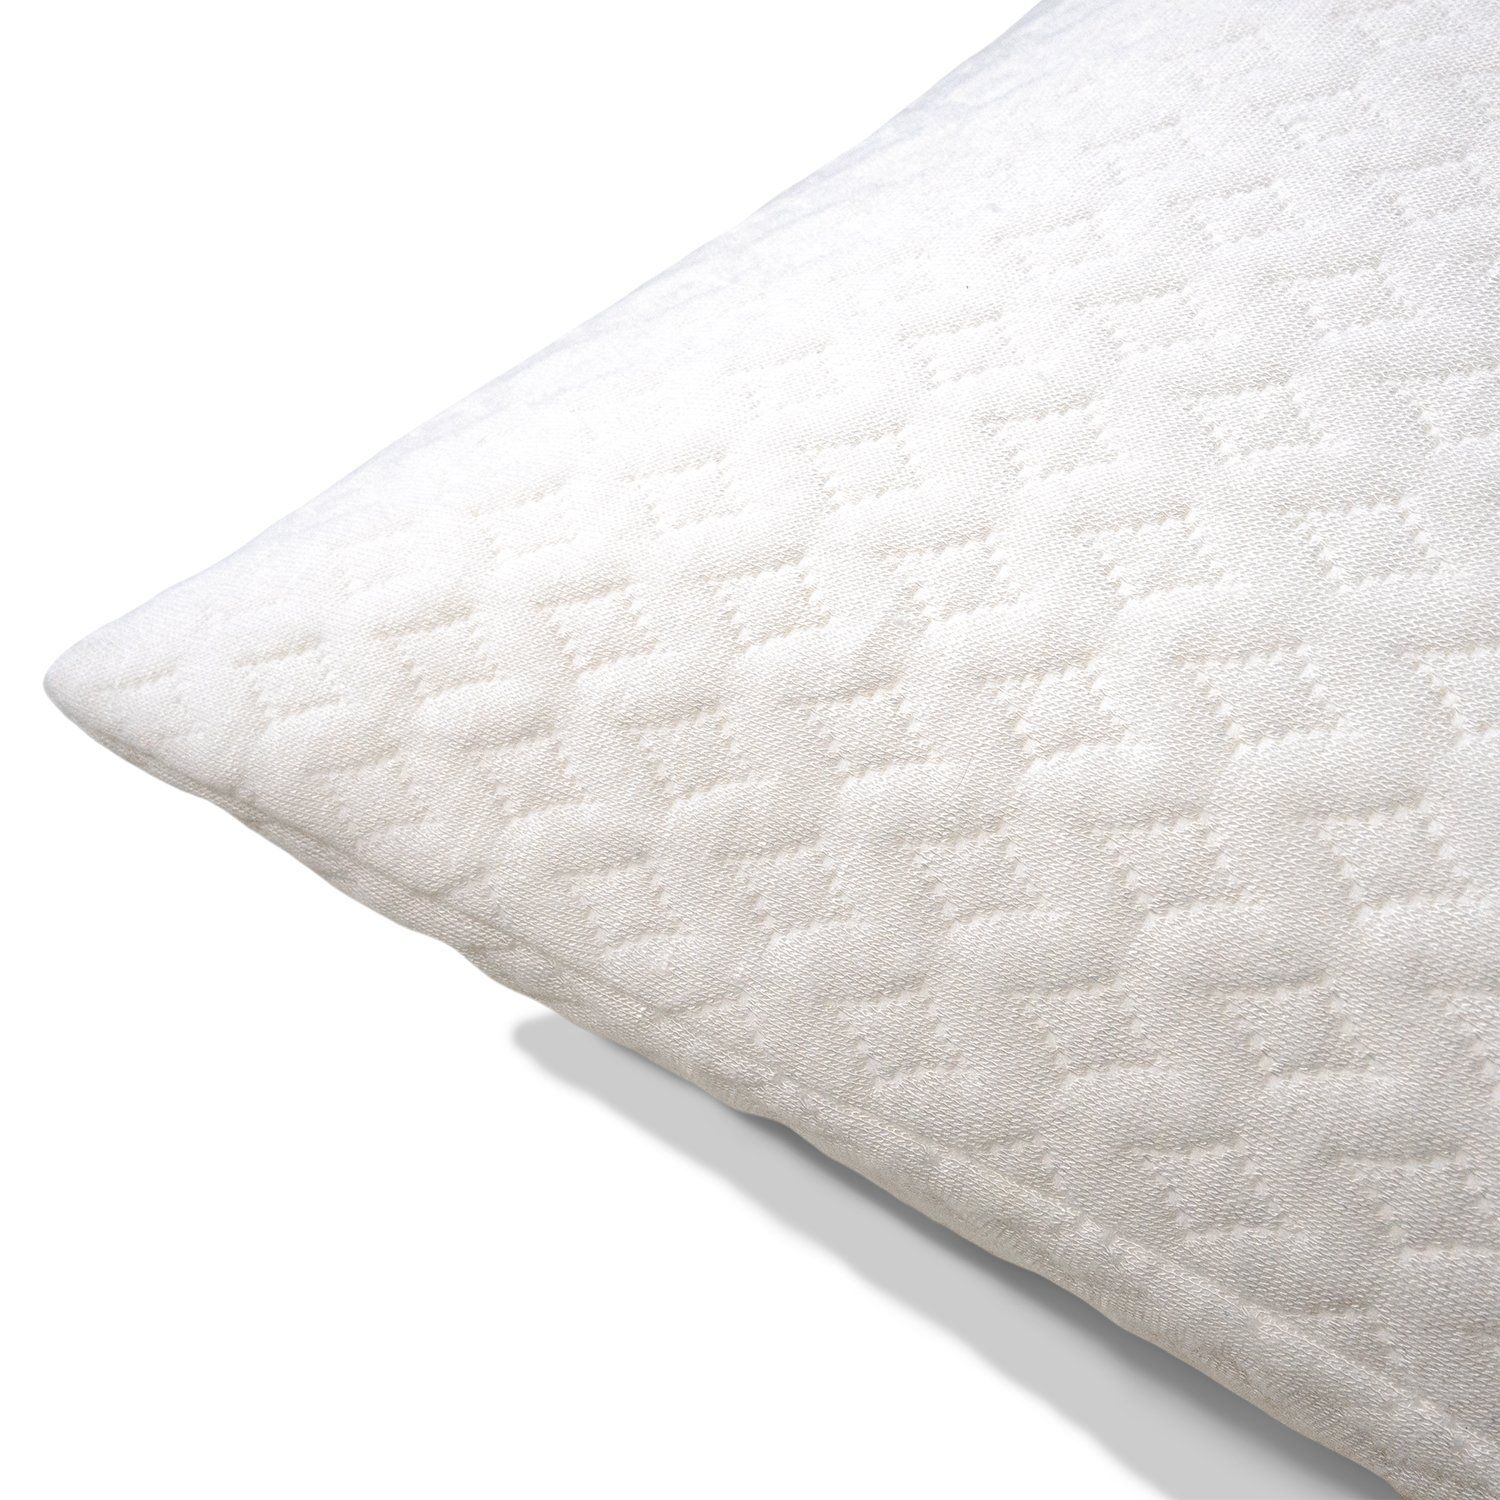 Luxury Bamboo Pillow King Size In 2020 Bamboo Pillow Queen